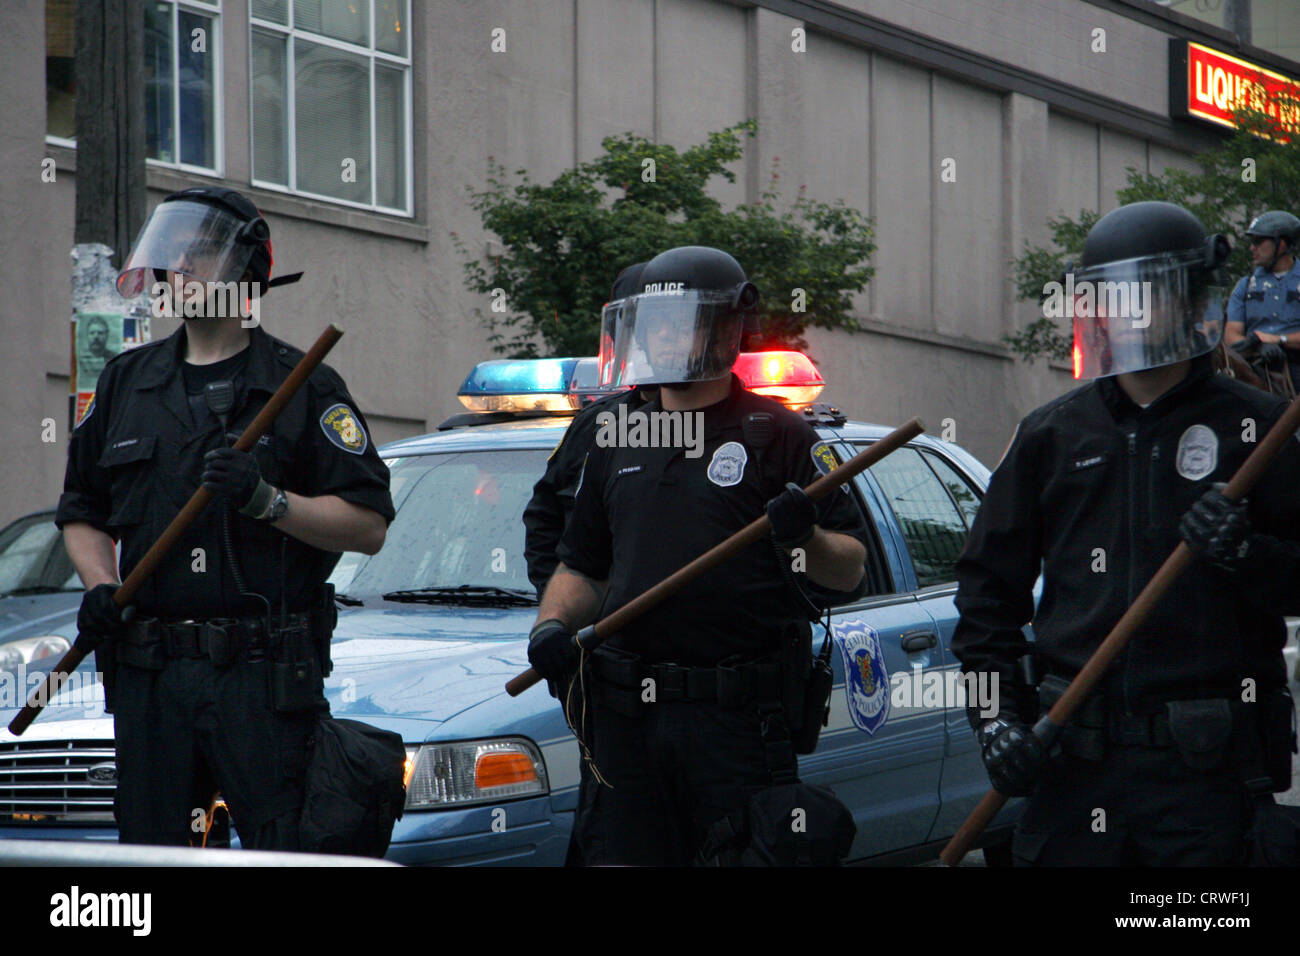 Seattle riot cops at demonstration. - Stock Image